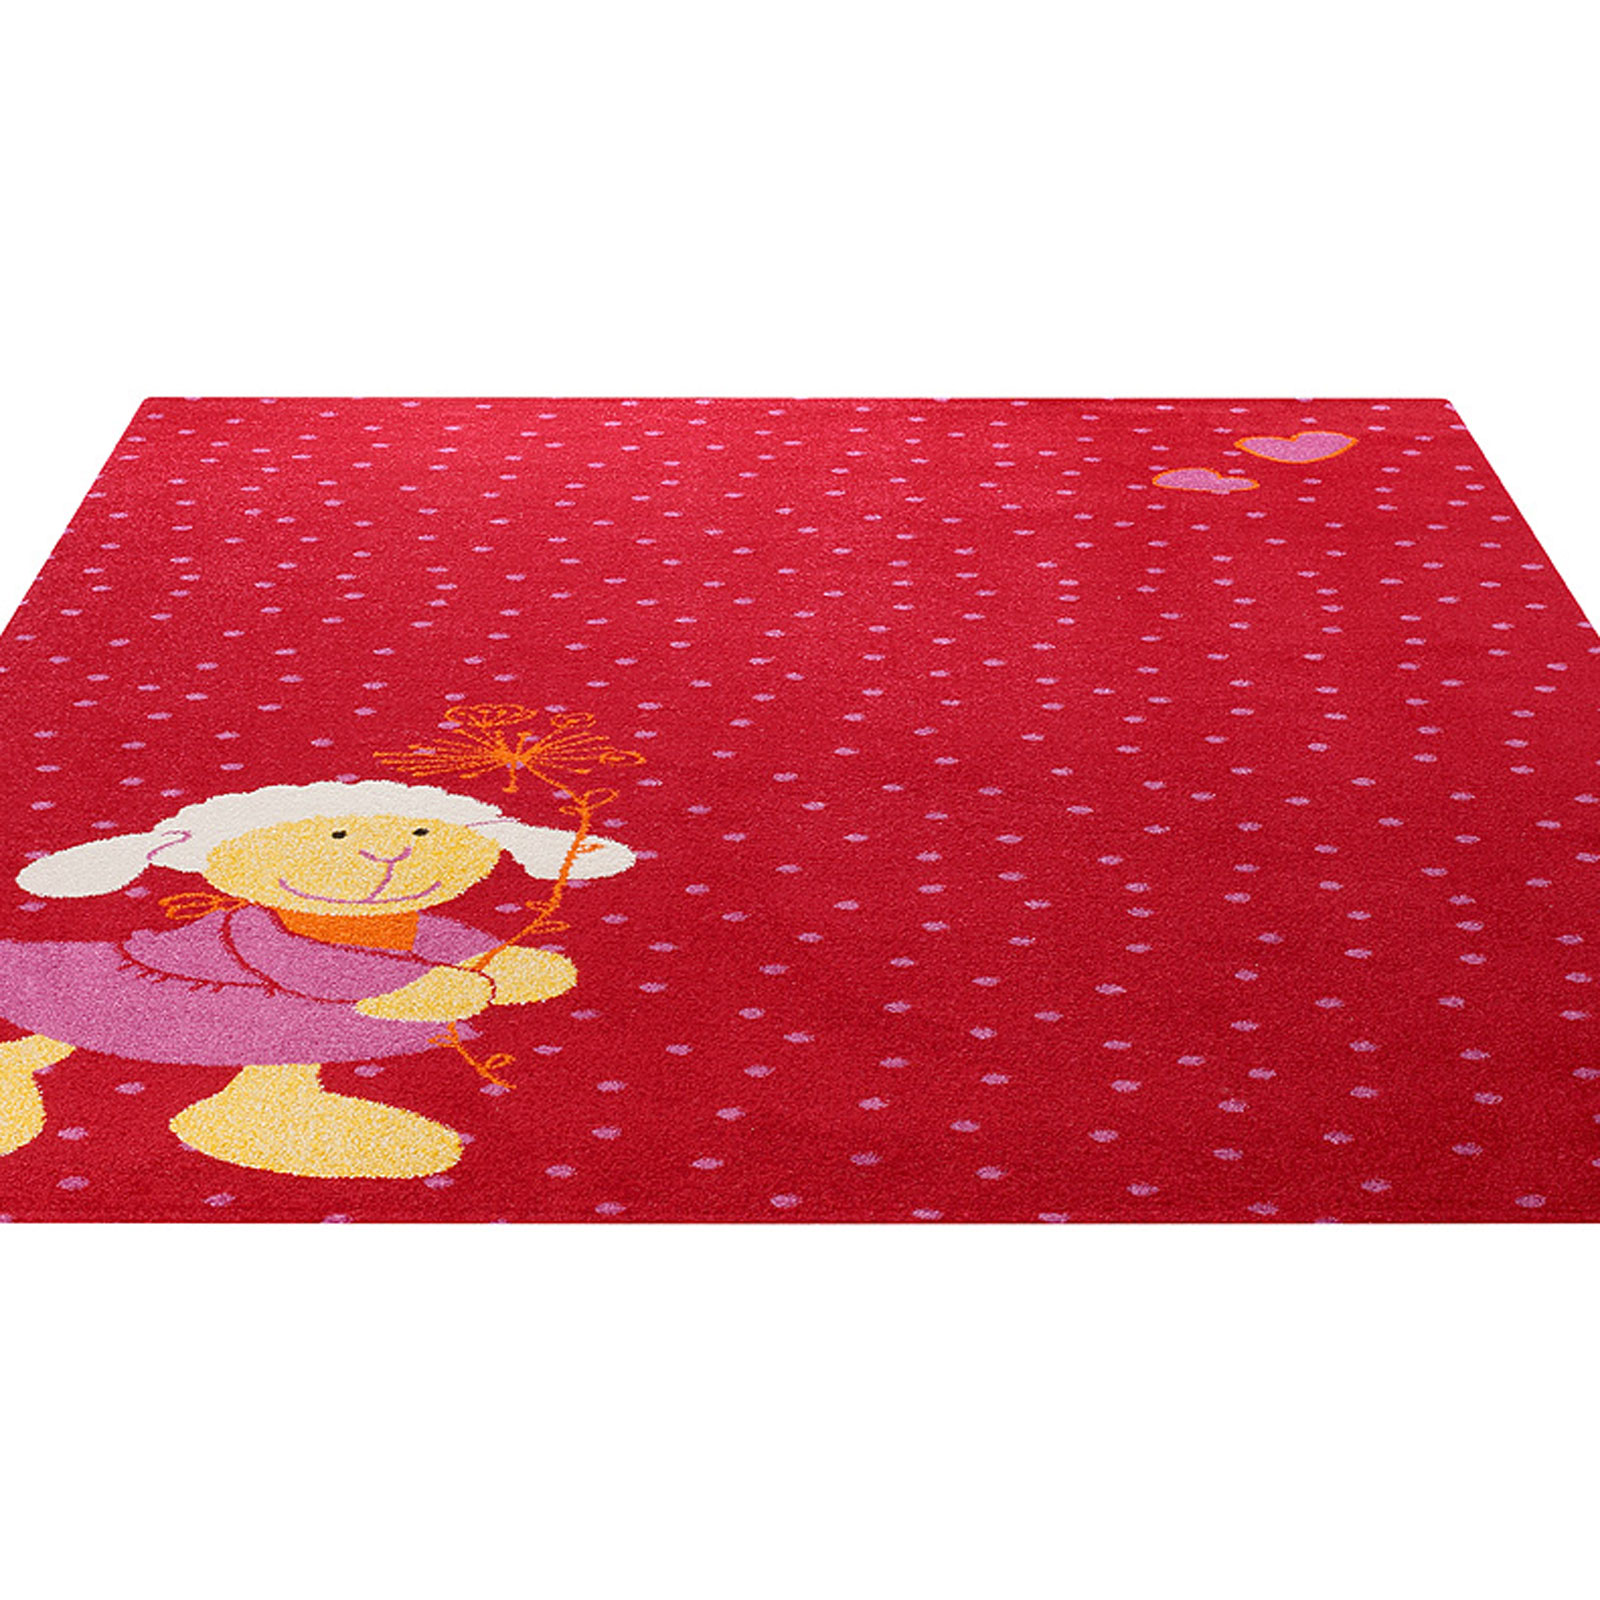 Schnuggi Rugs in Red 0524 05